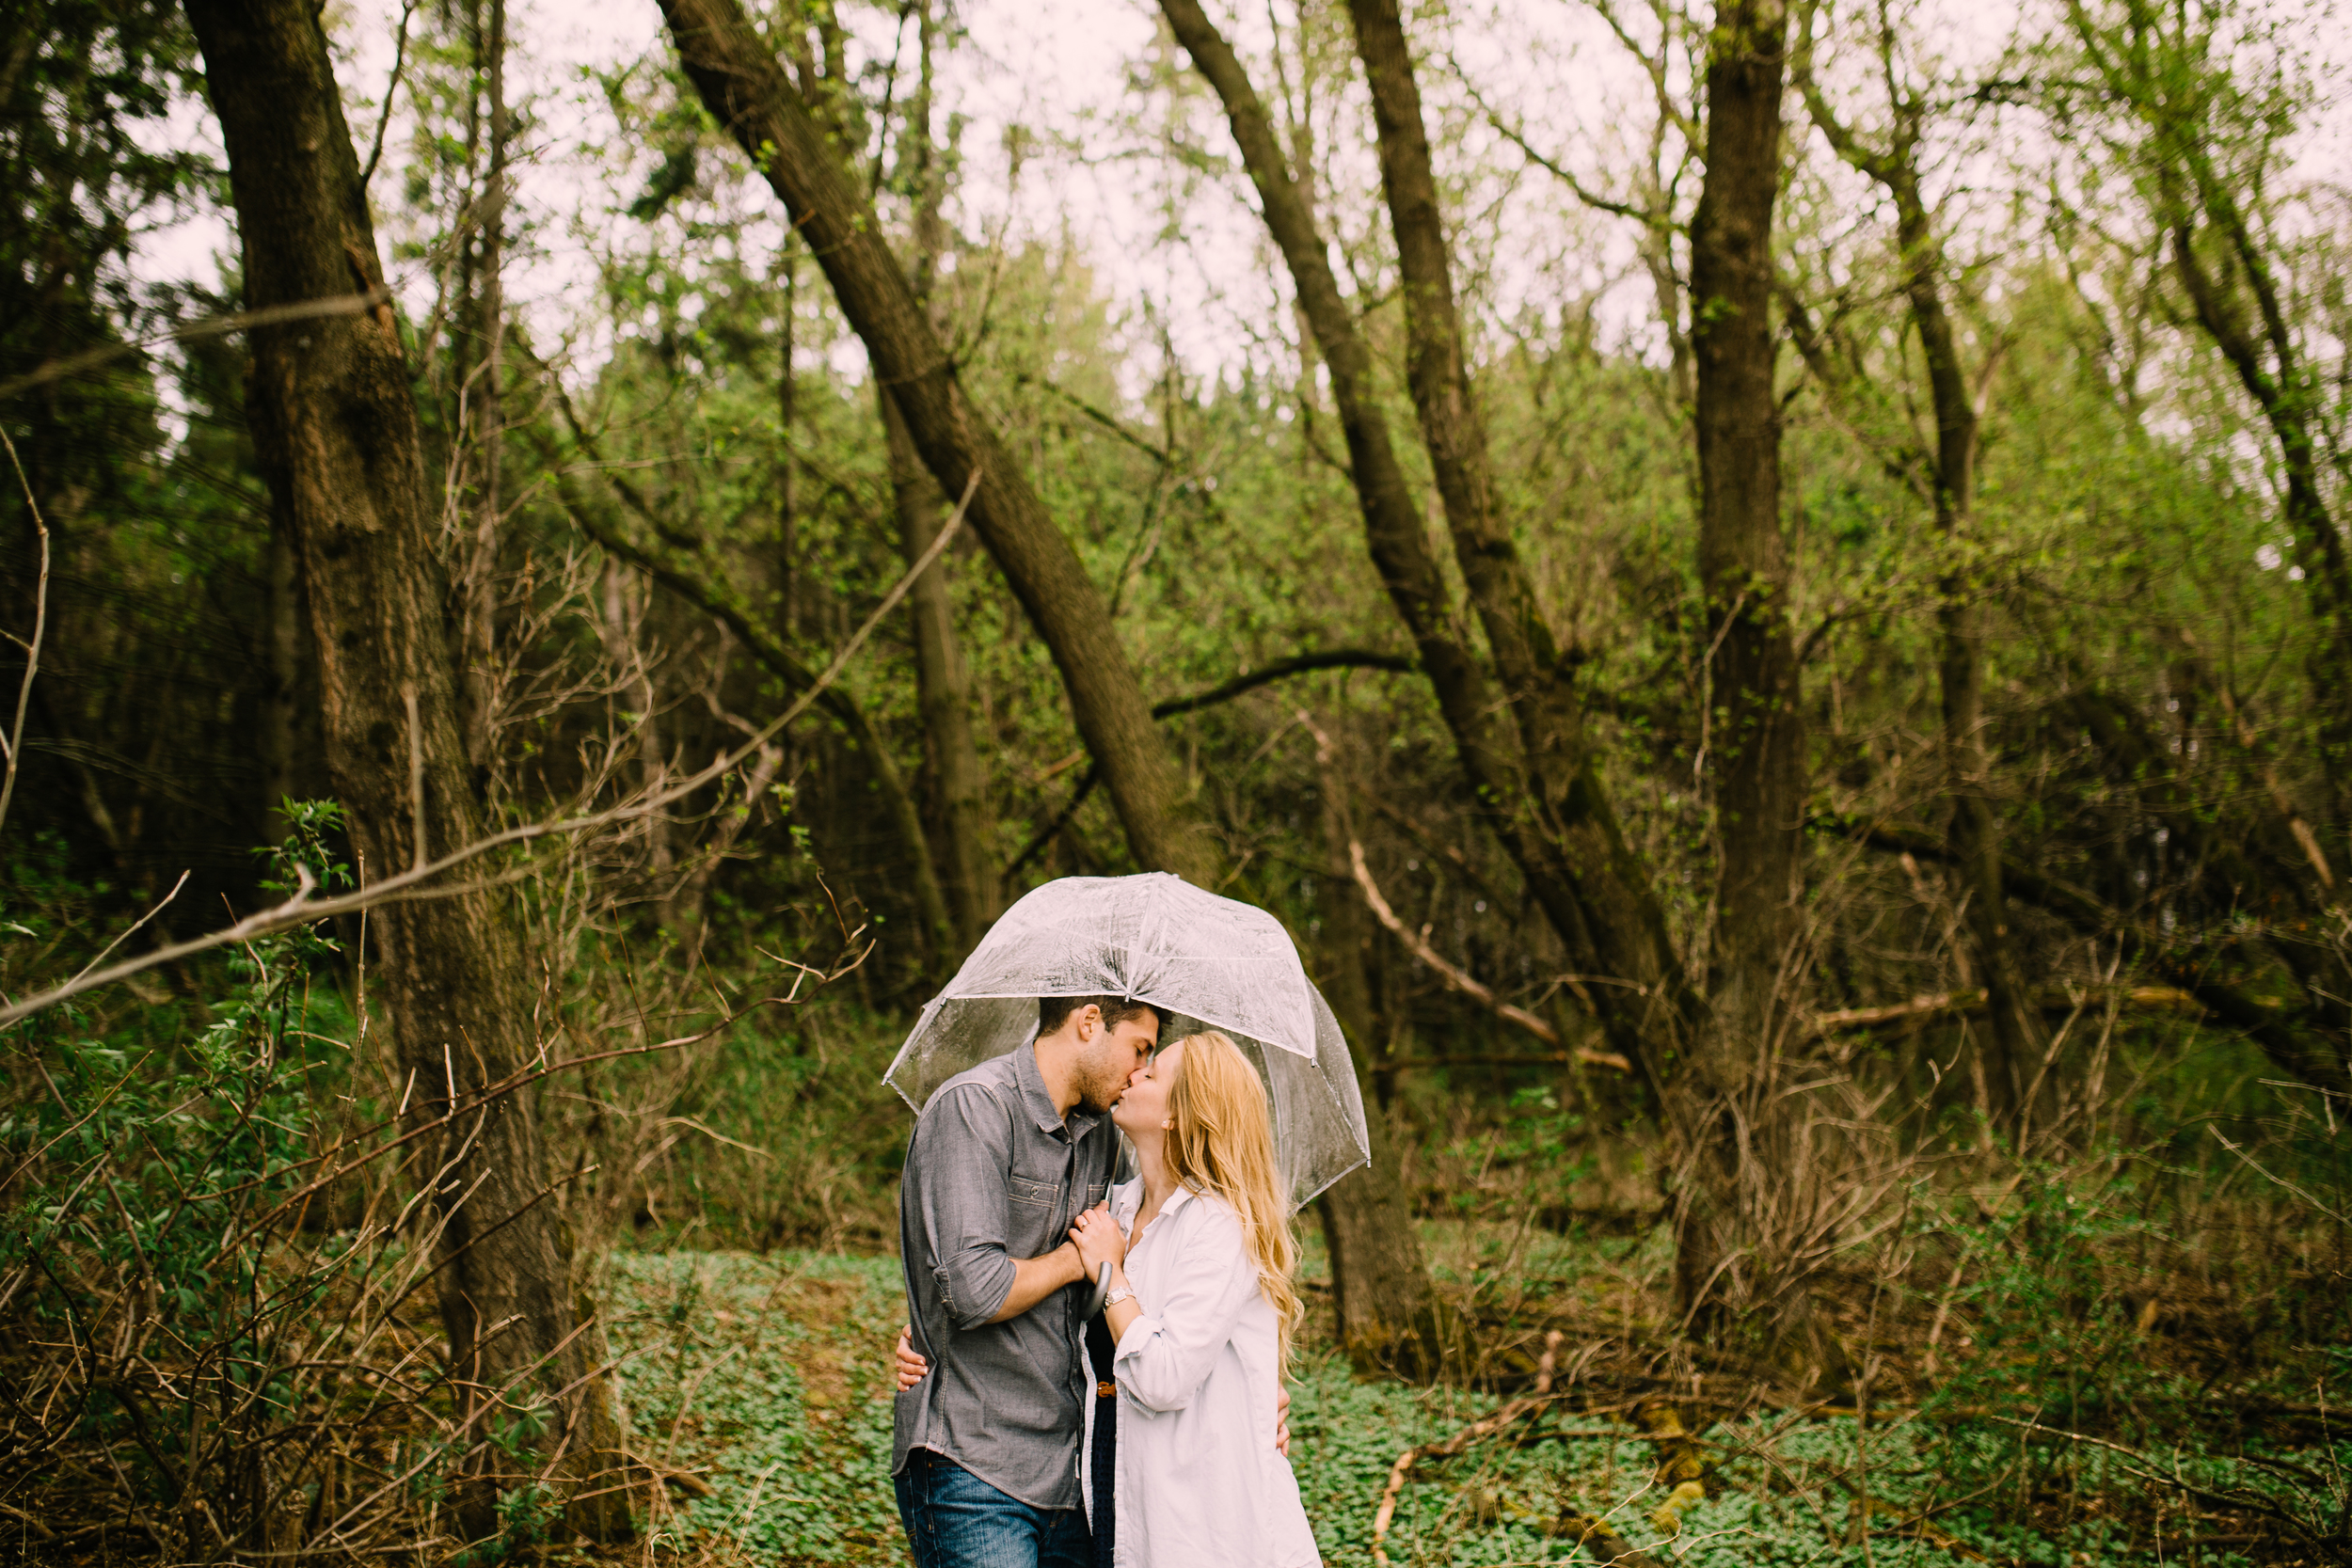 minneapolis-engagement-rain-umbrella